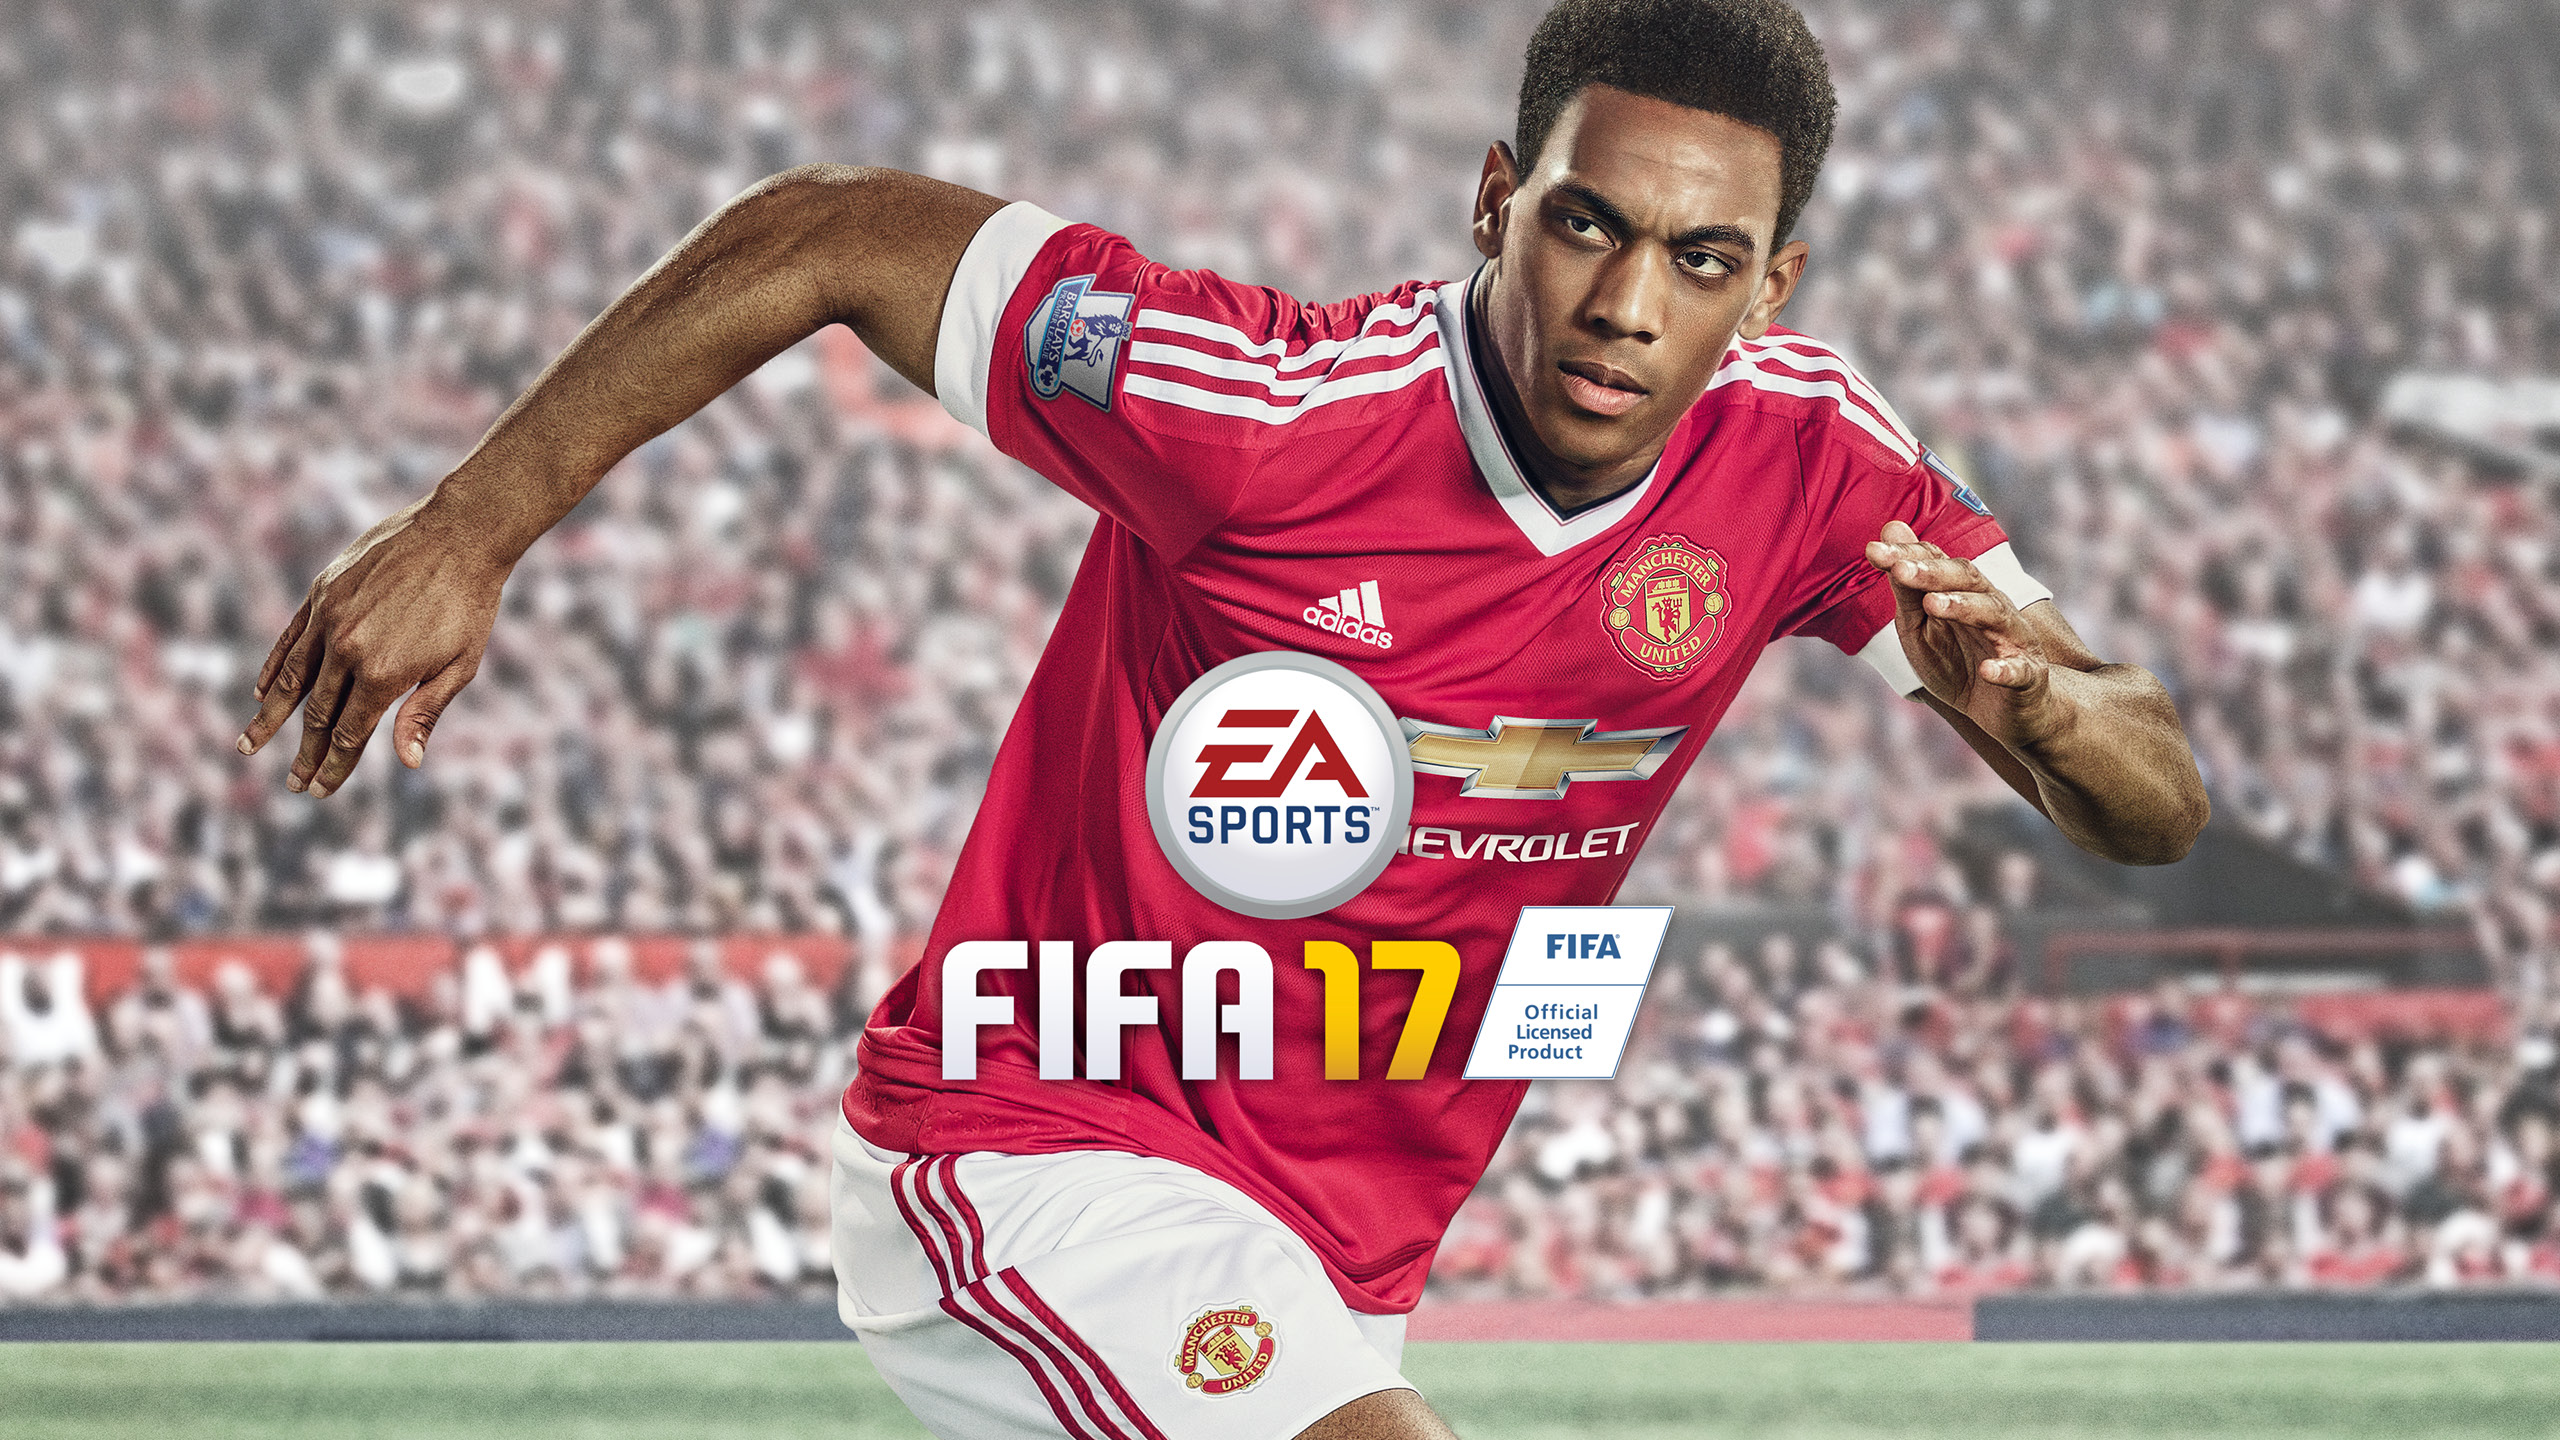 Anthony Martial FIFA 17 HD Wallpaper